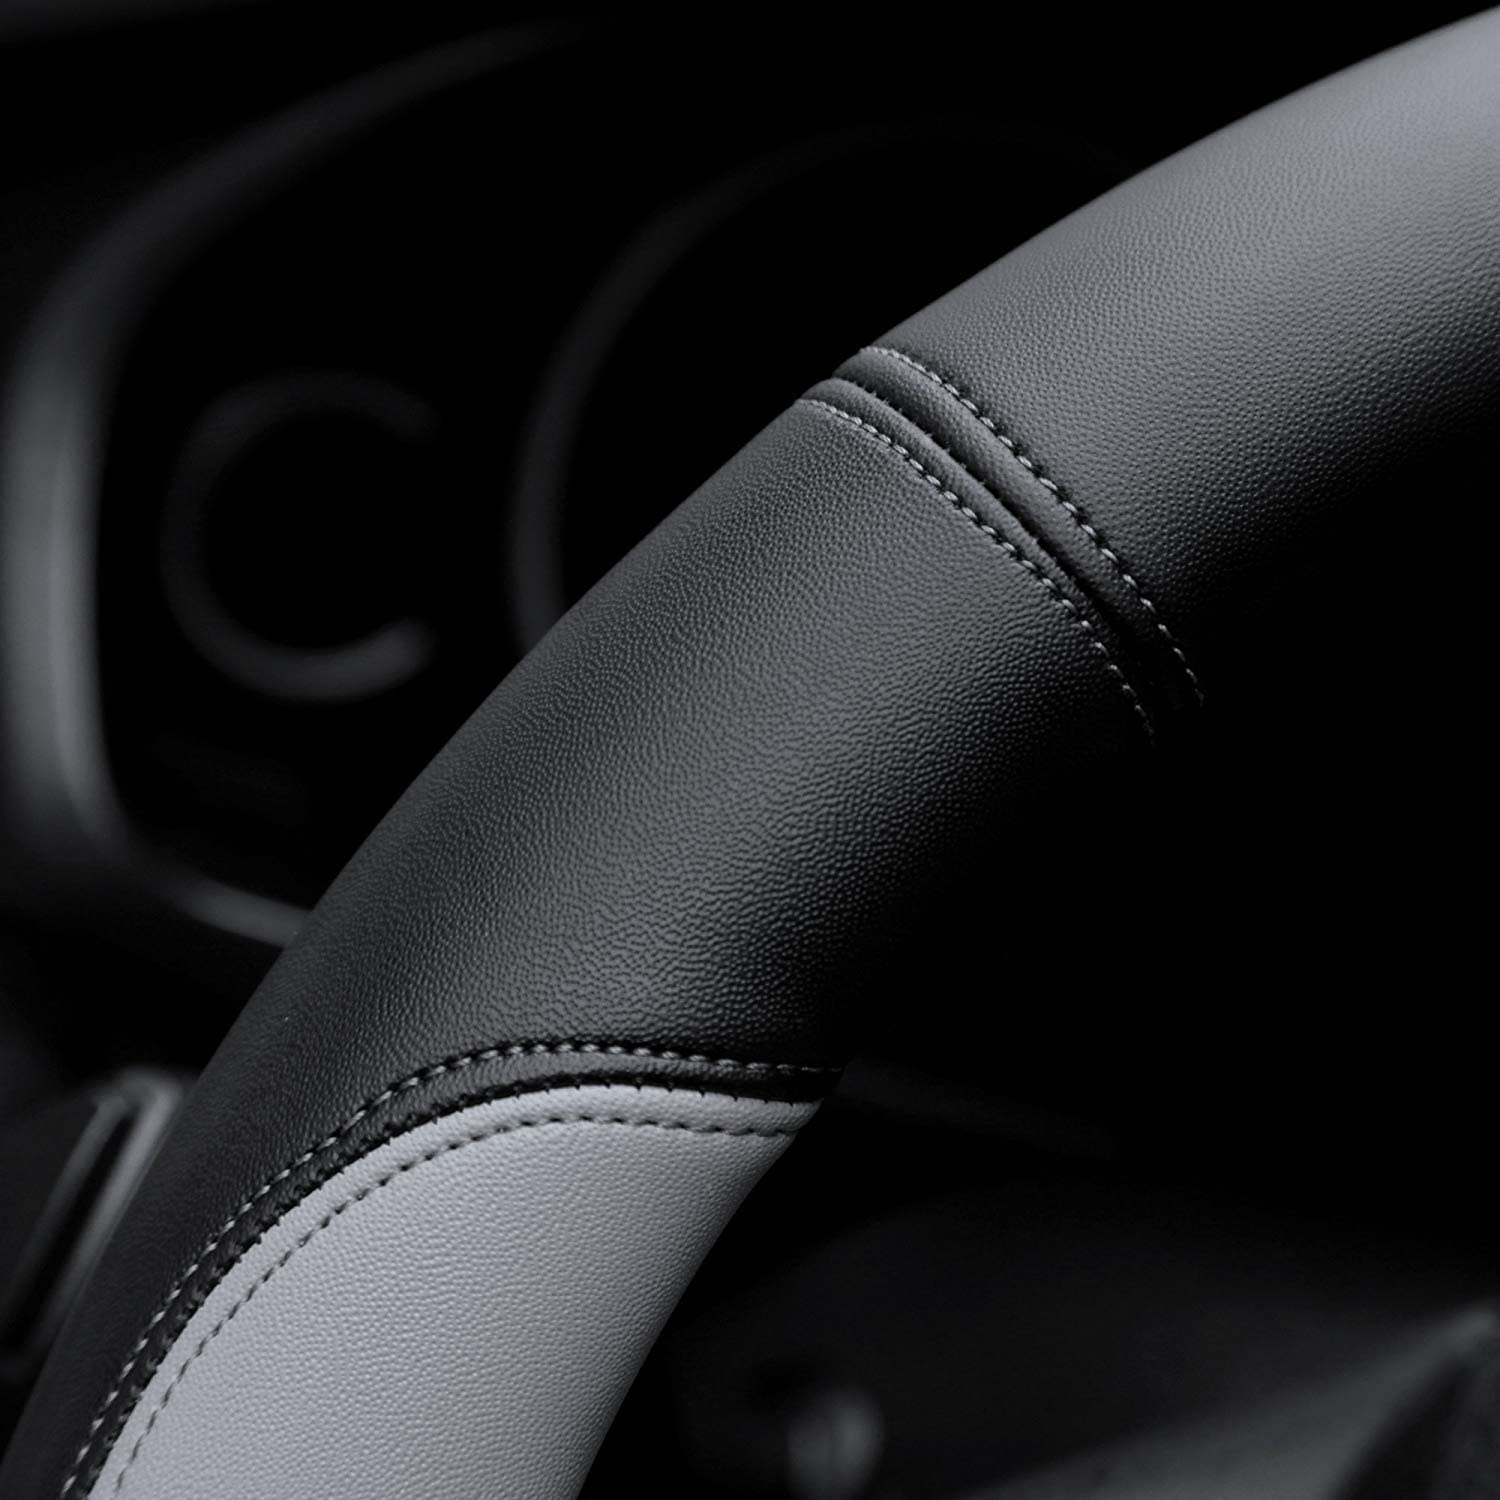 Valleycomfy Microfiber Leather Steering Wheel Covers Small Size for Prius Civic Model 3 Camaro Spark Rogue Mini Smart with 14 inches-14 1//4 inches Outer Diameter Black